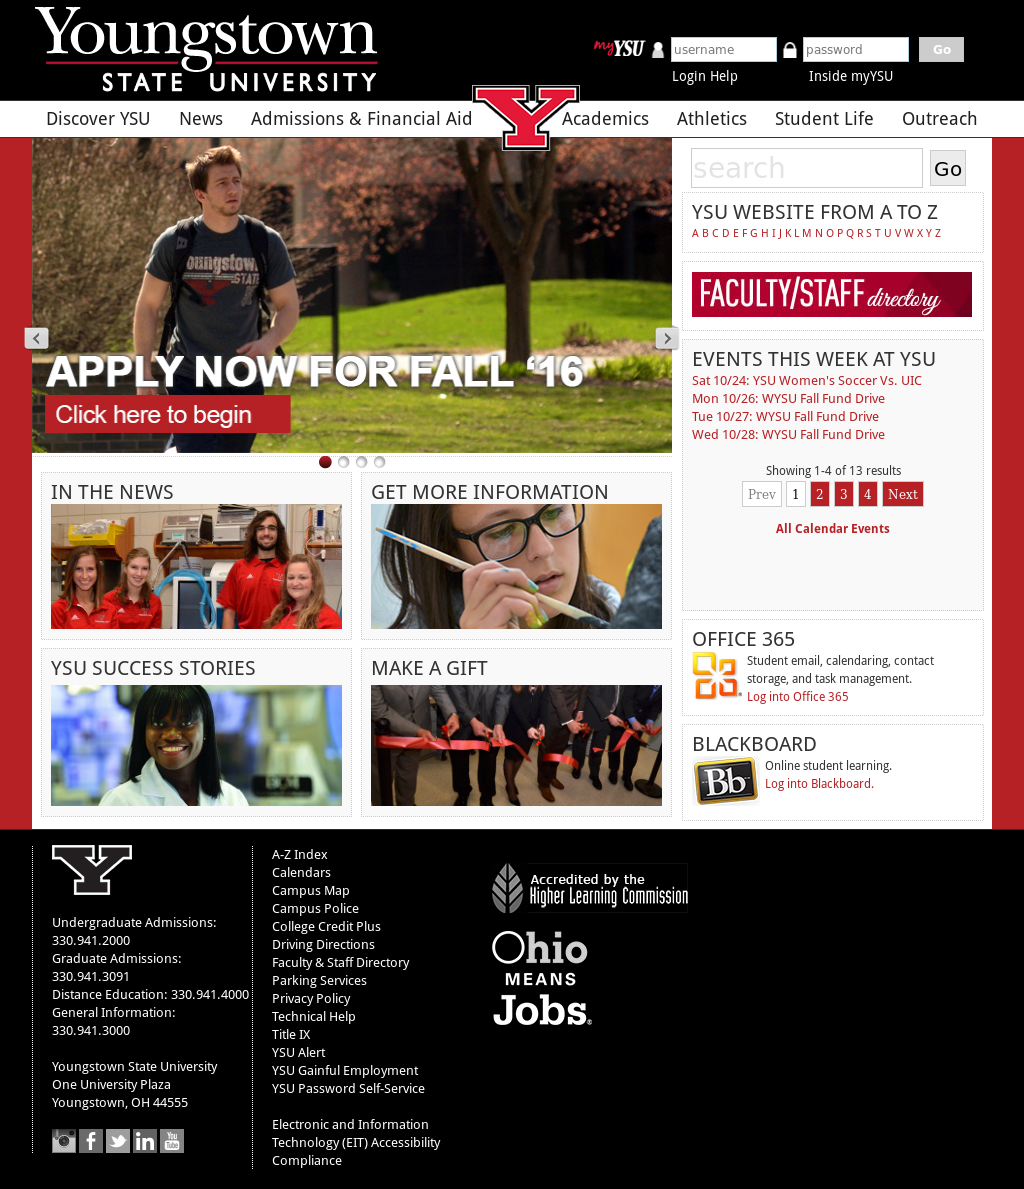 Youngstown State University Compeors, Revenue and Employees ... on youngstown university campus map, ferris state university campus map, ohio state university main campus map, cleveland state campus map, phoenix college campus map, penn state campus map, akron campus map, dwu campus map, the ohio state university campus map, university of south alabama campus map, u of i campus map, winona state university campus map, henderson state university campus map, vsu campus map, connecticut college campus map, ysm campus map, su campus map, maine campus map, university of alabama football parking map, michigan state university msu campus map,